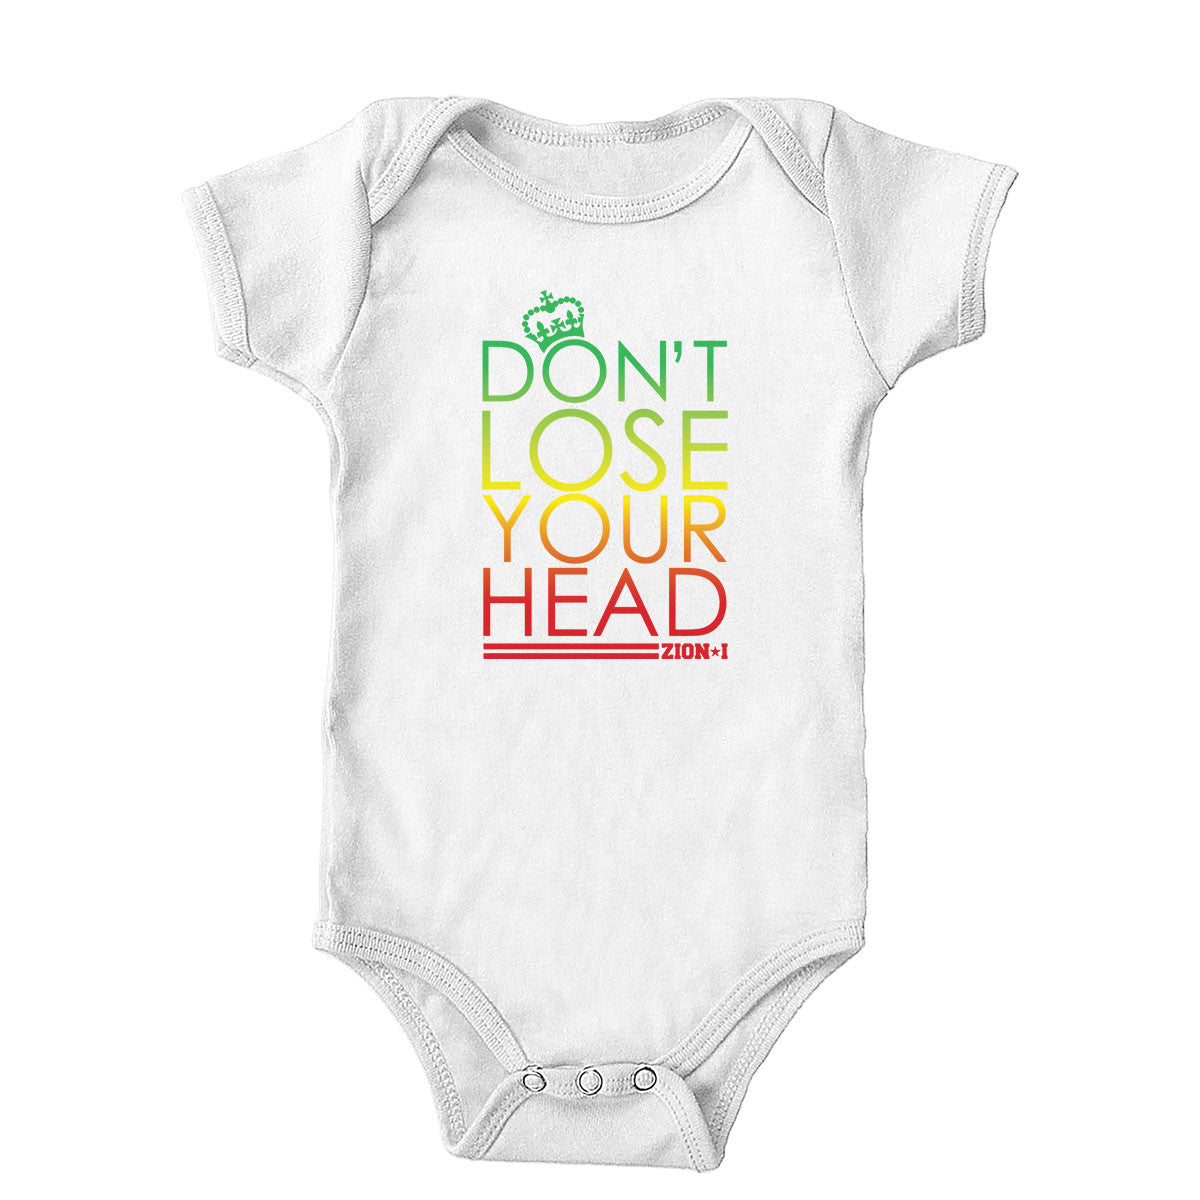 Don't Lose Your Head Onesie